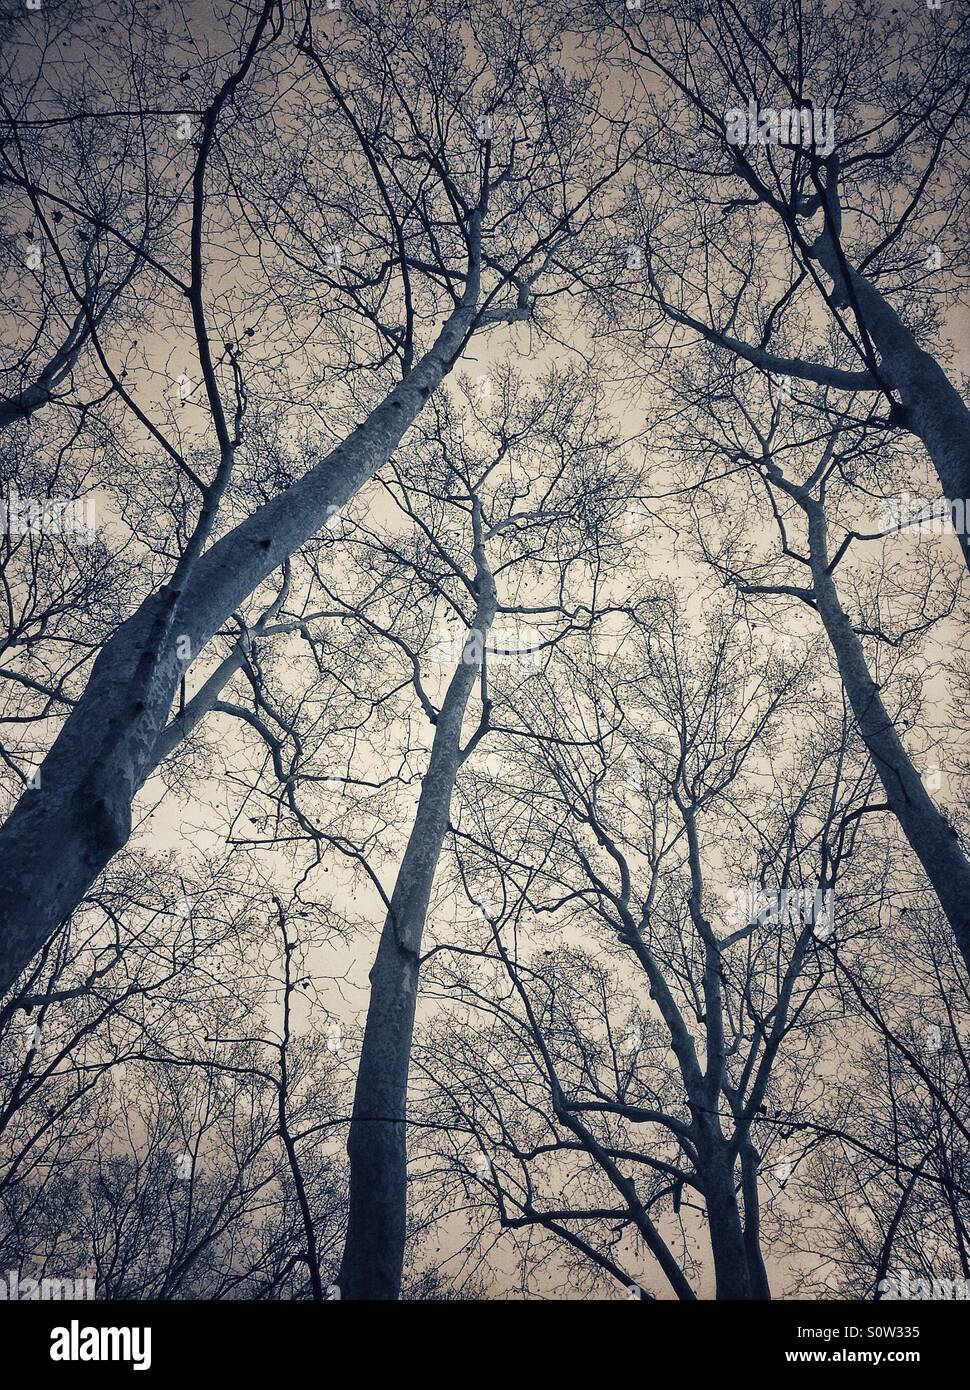 Looking up branches of trees in La Devesa park, Girona, Catalonia, Spain Stock Photo